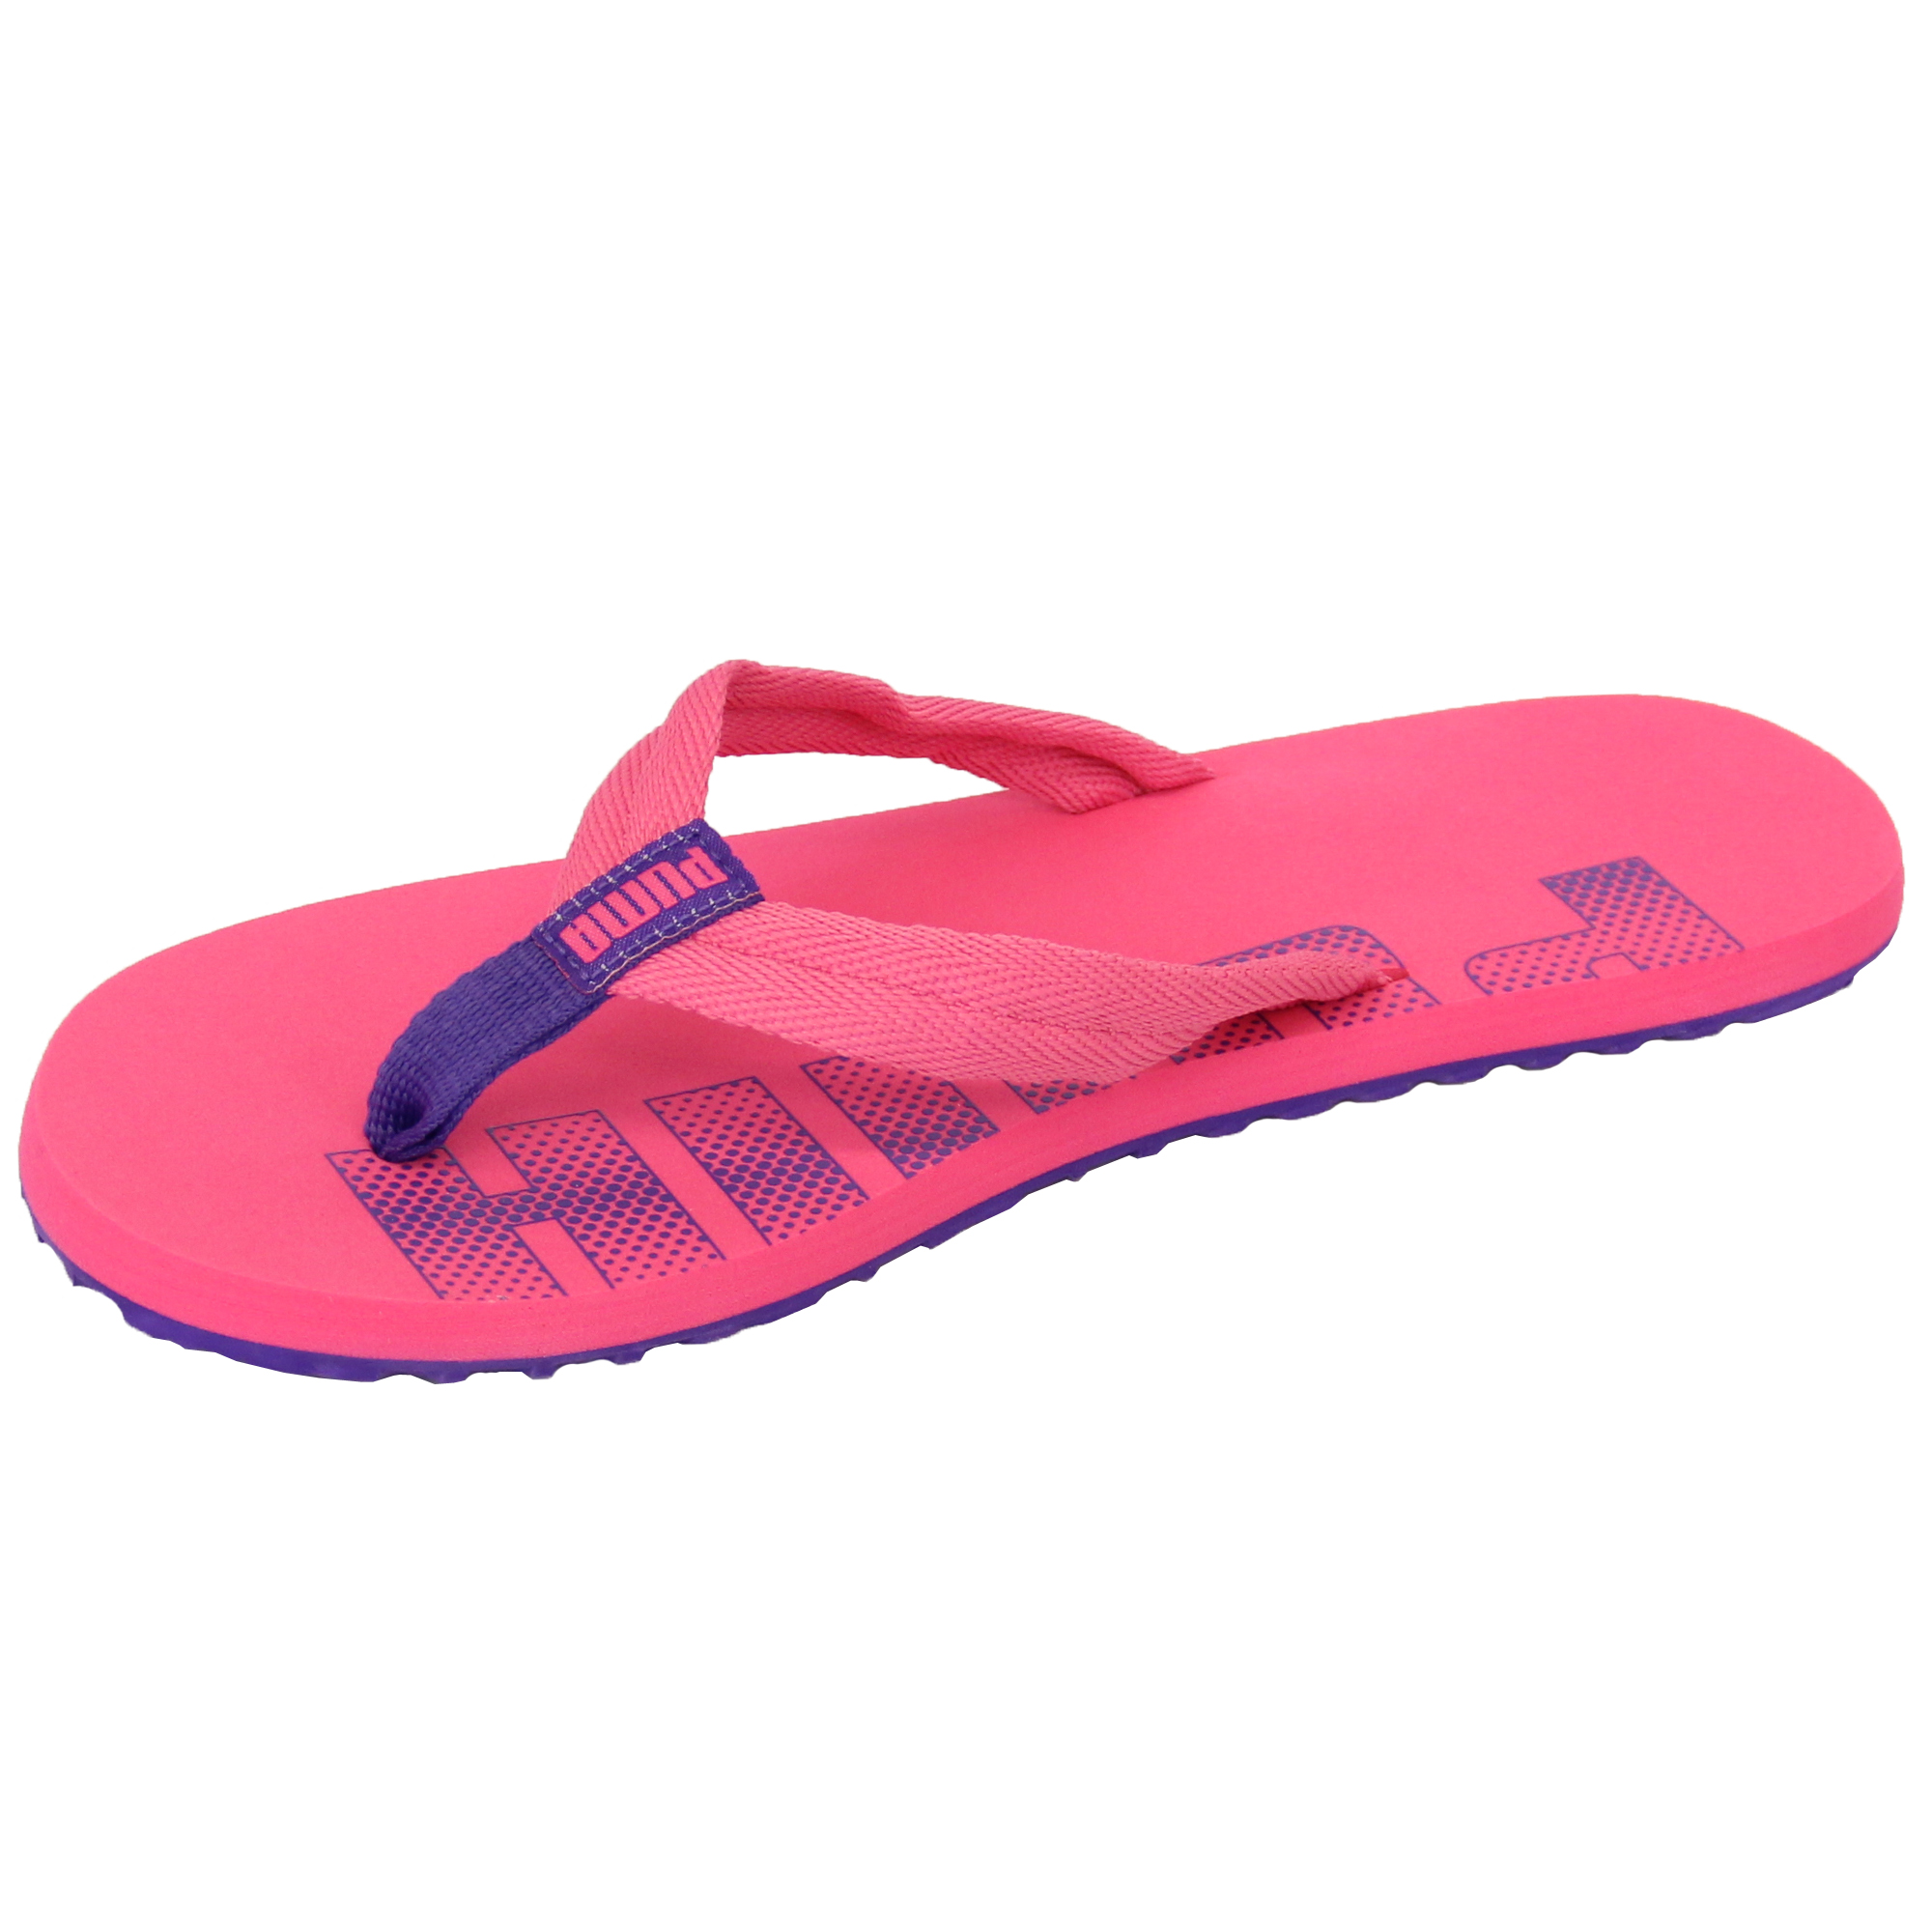 c350aa43512844 puma epic flip cheap   OFF64% Discounted